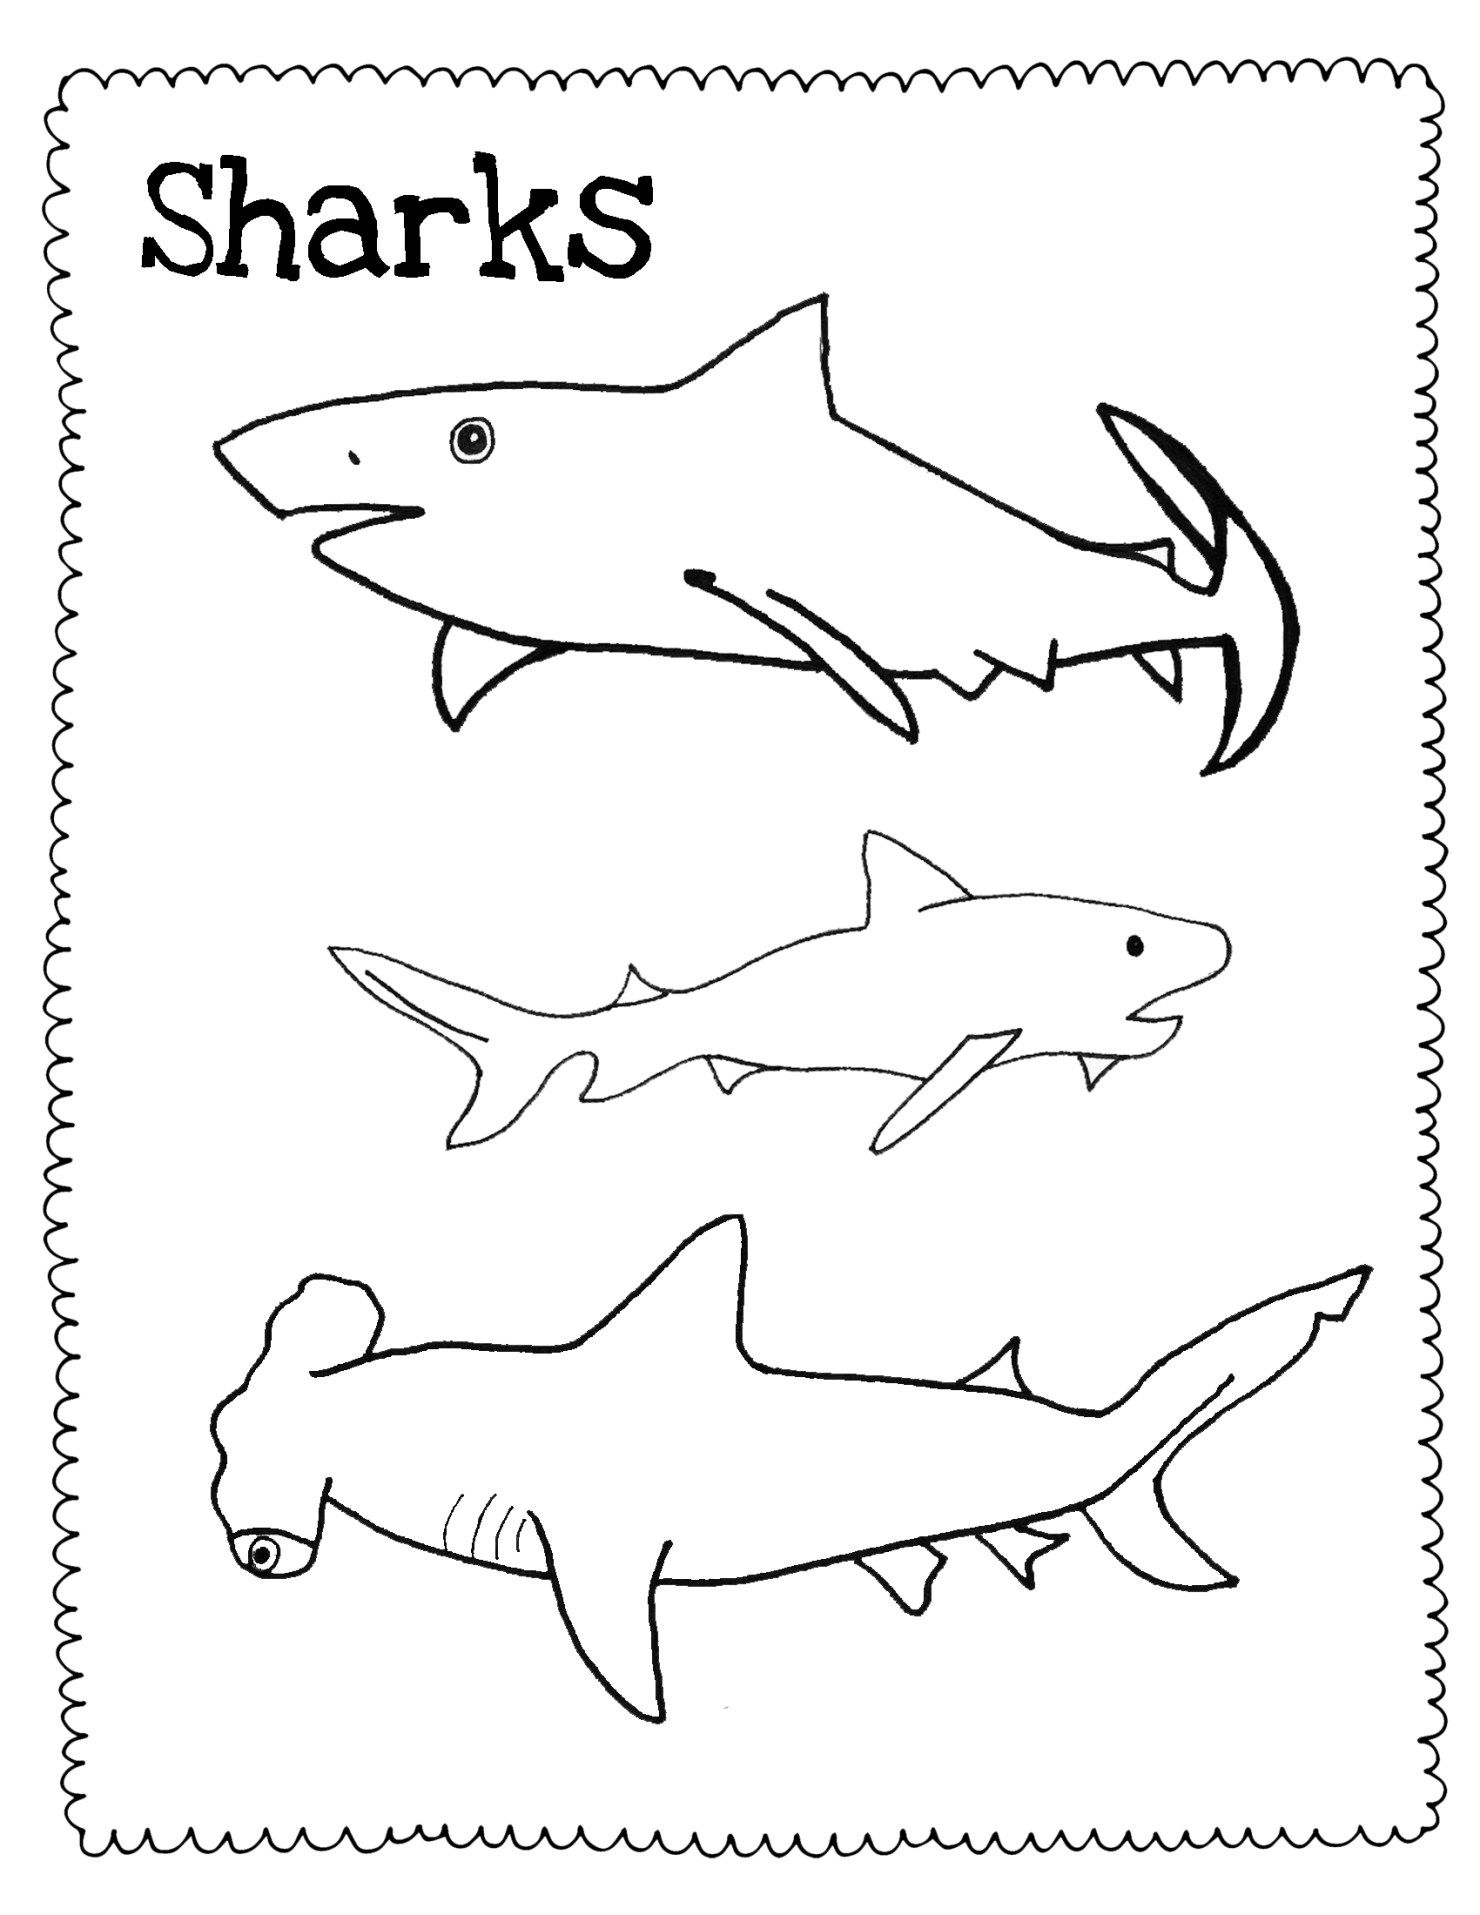 Watercolor Sharks And Free Shark Drawing Guide Coloring Pages Art Is Basic An